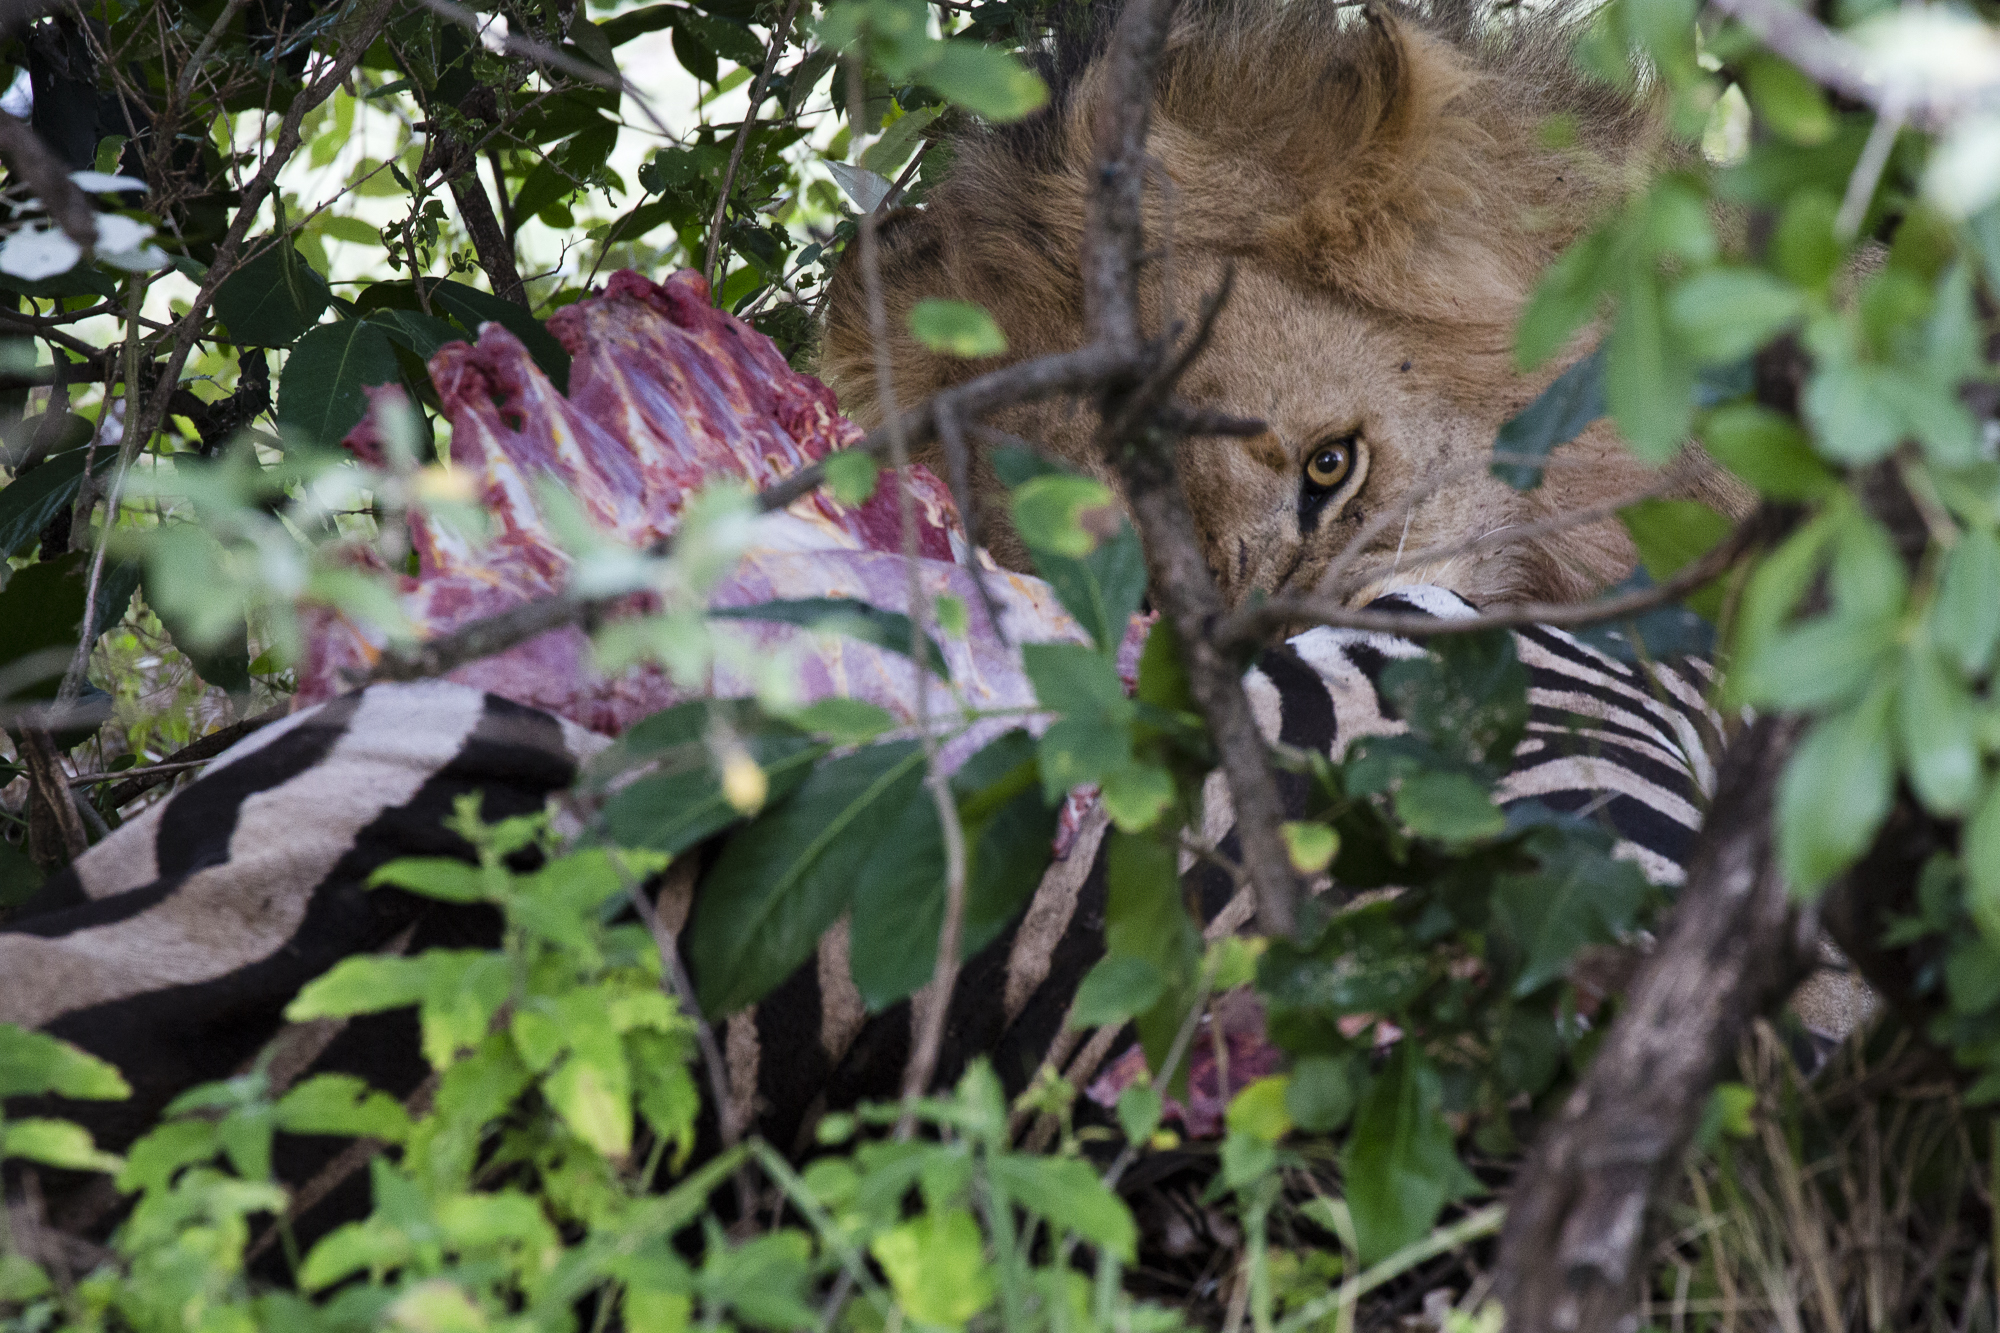 A young lion feeds on a zebra while hiding amongst the bushes of the Maasai Mara National Reserve, in Kenya. When alone, lions often drag their prey into bushes or similarly protected areas before consuming it.